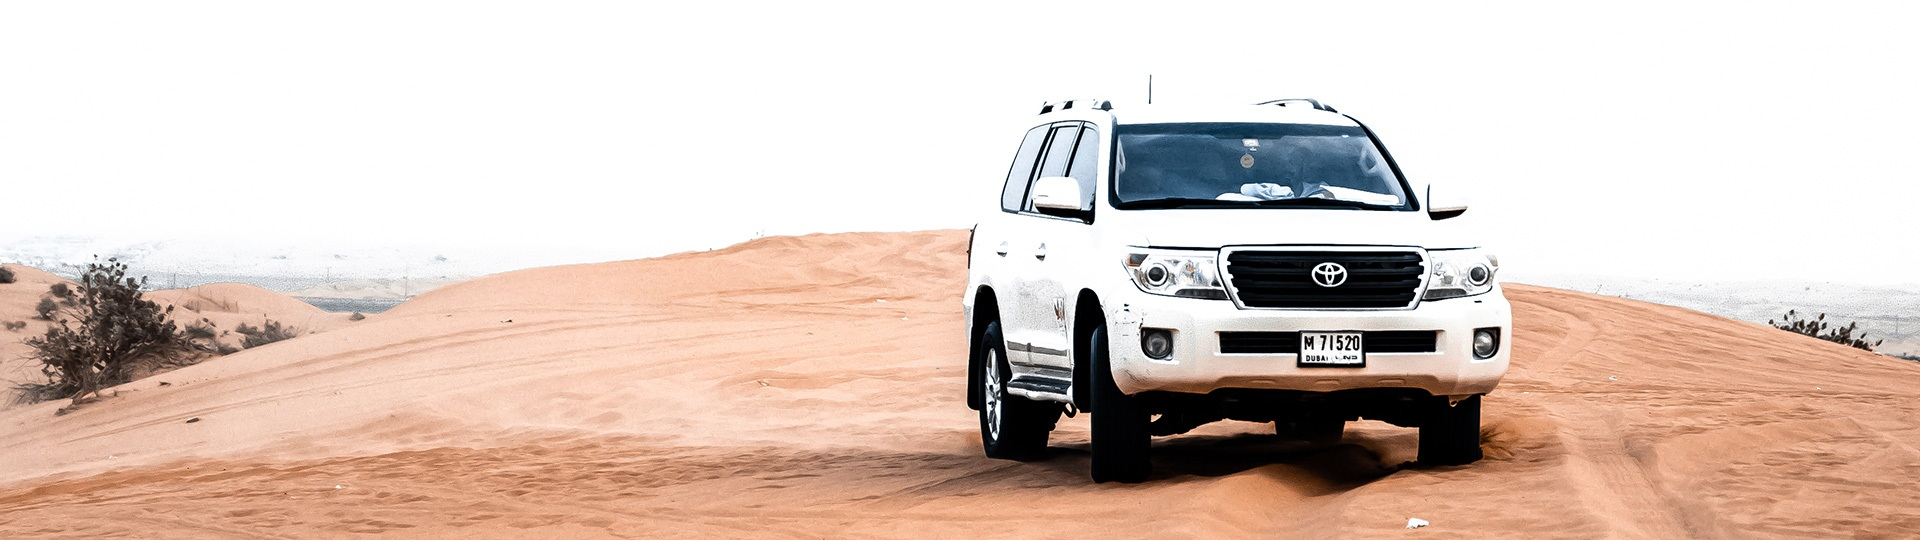 Where to get Dubai Desert Safari Booking